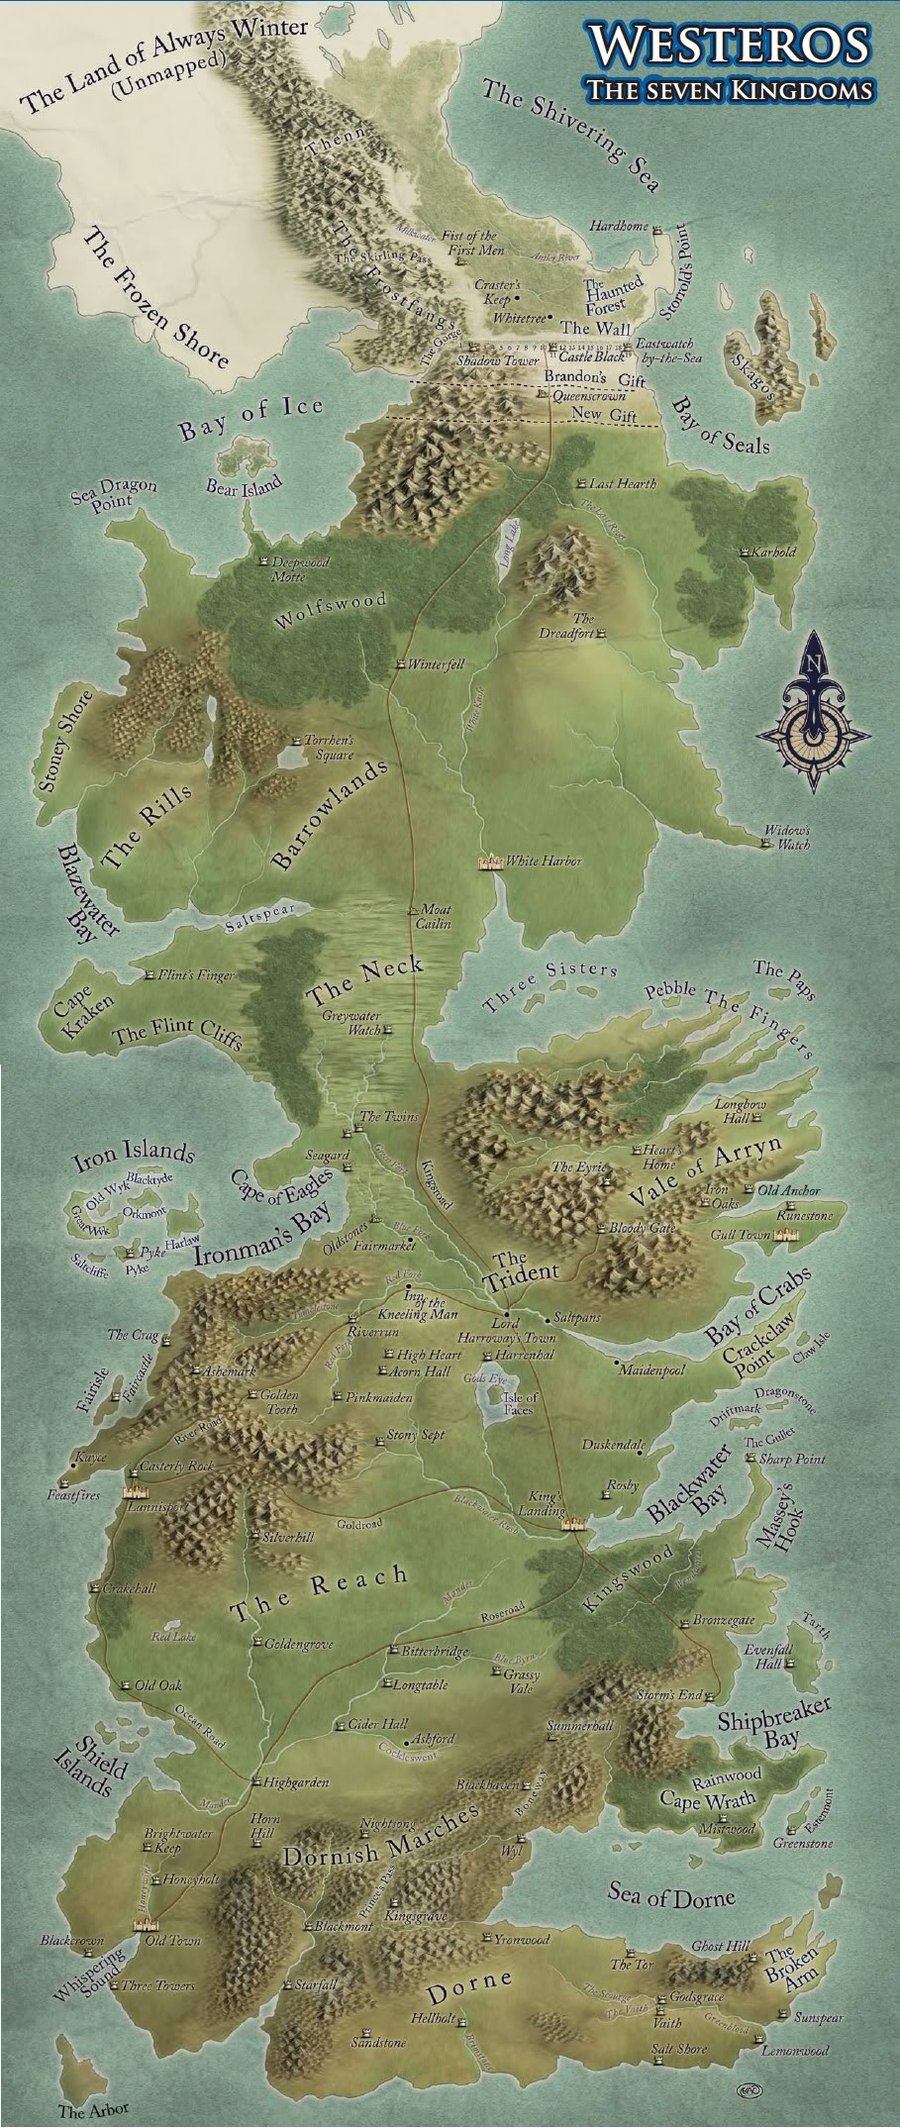 Load 149 More Imagesgrid View Game Of Thrones Map Phone